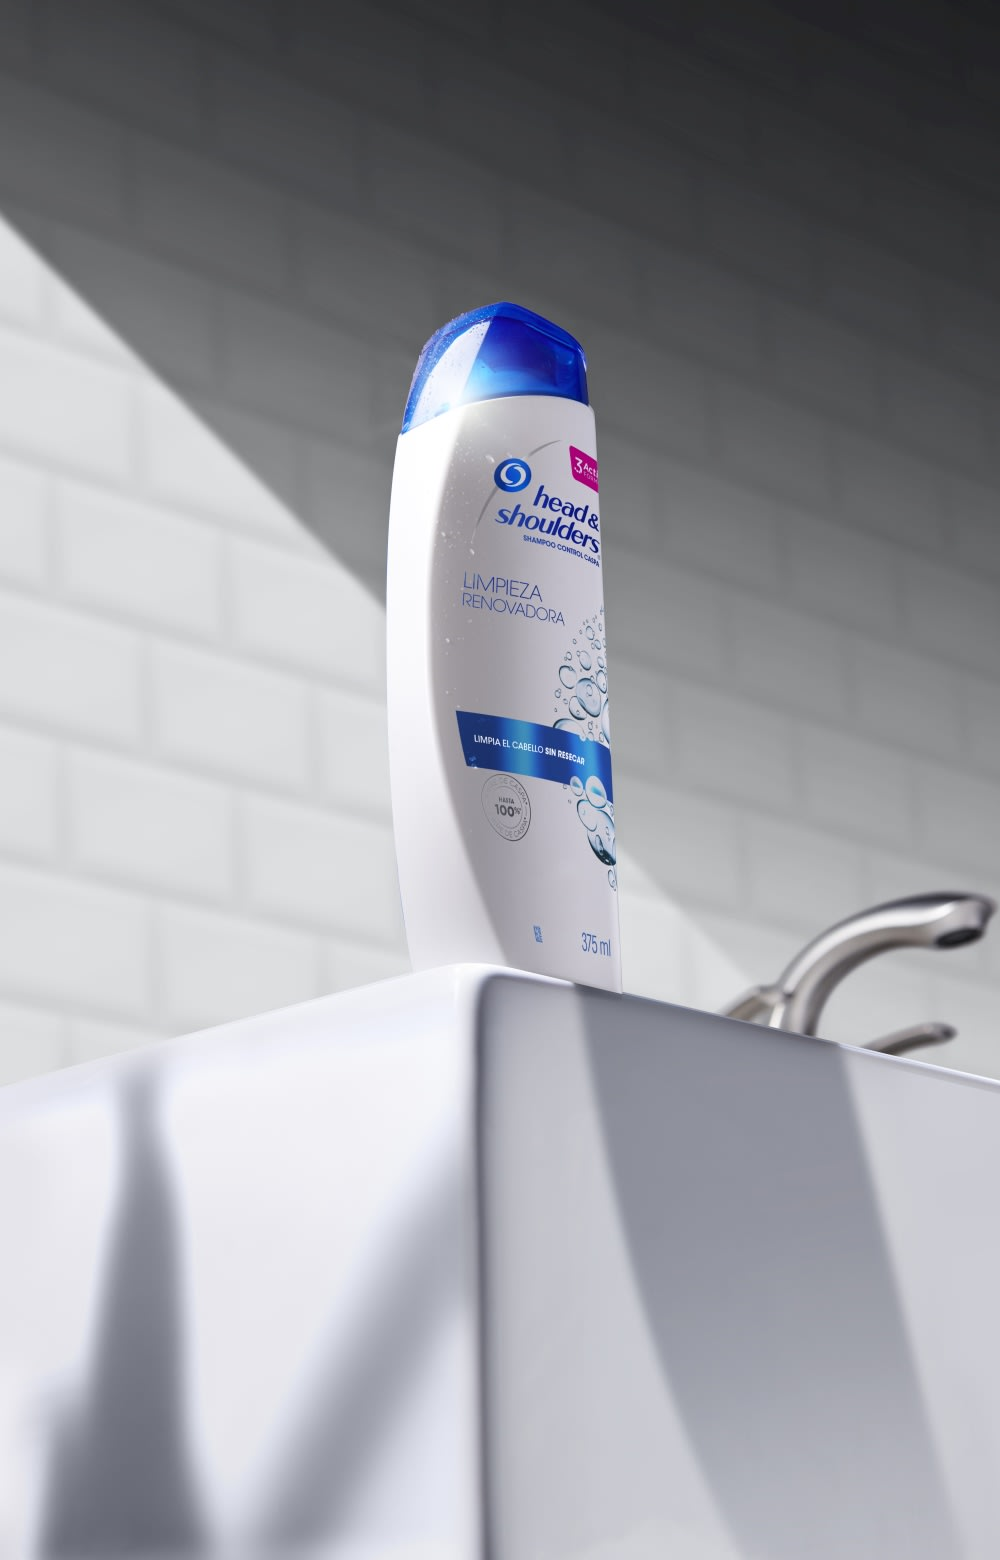 botella reciclable de shampoo Head & Shoulders